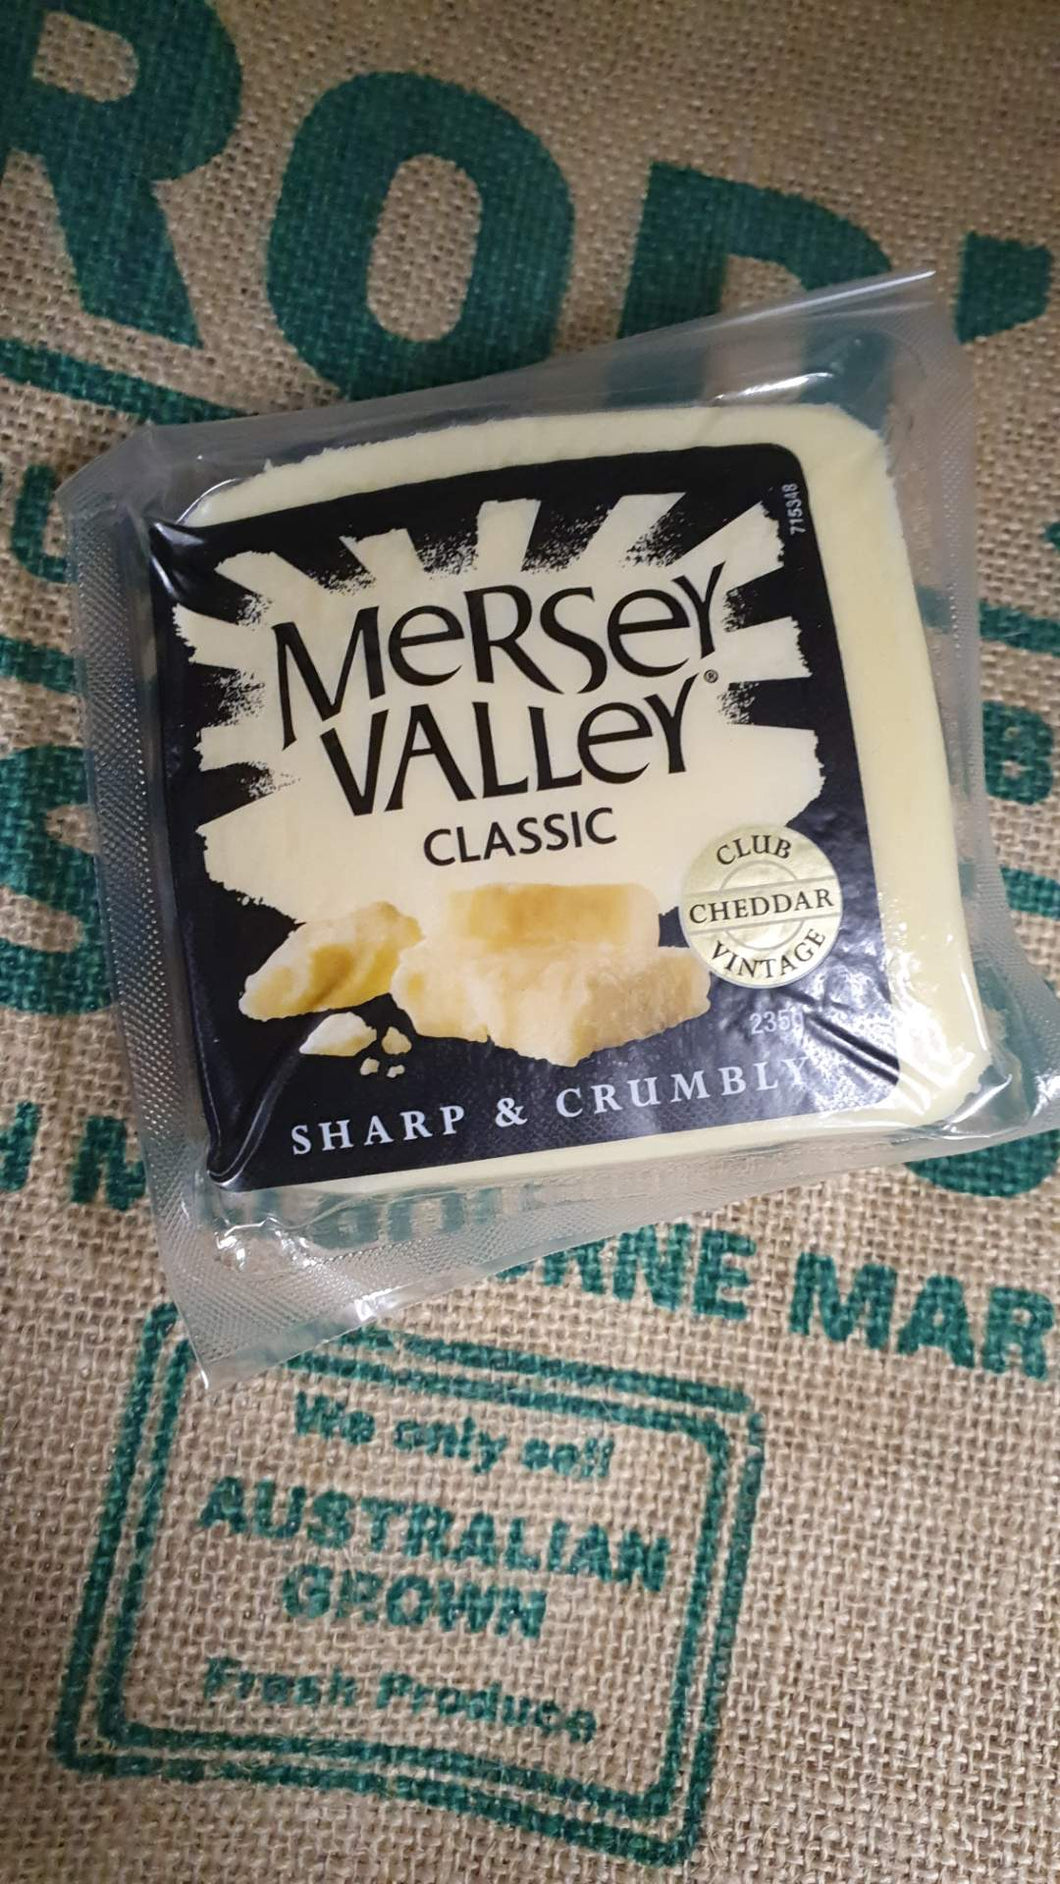 Cheddar- Mersey Valley Classic